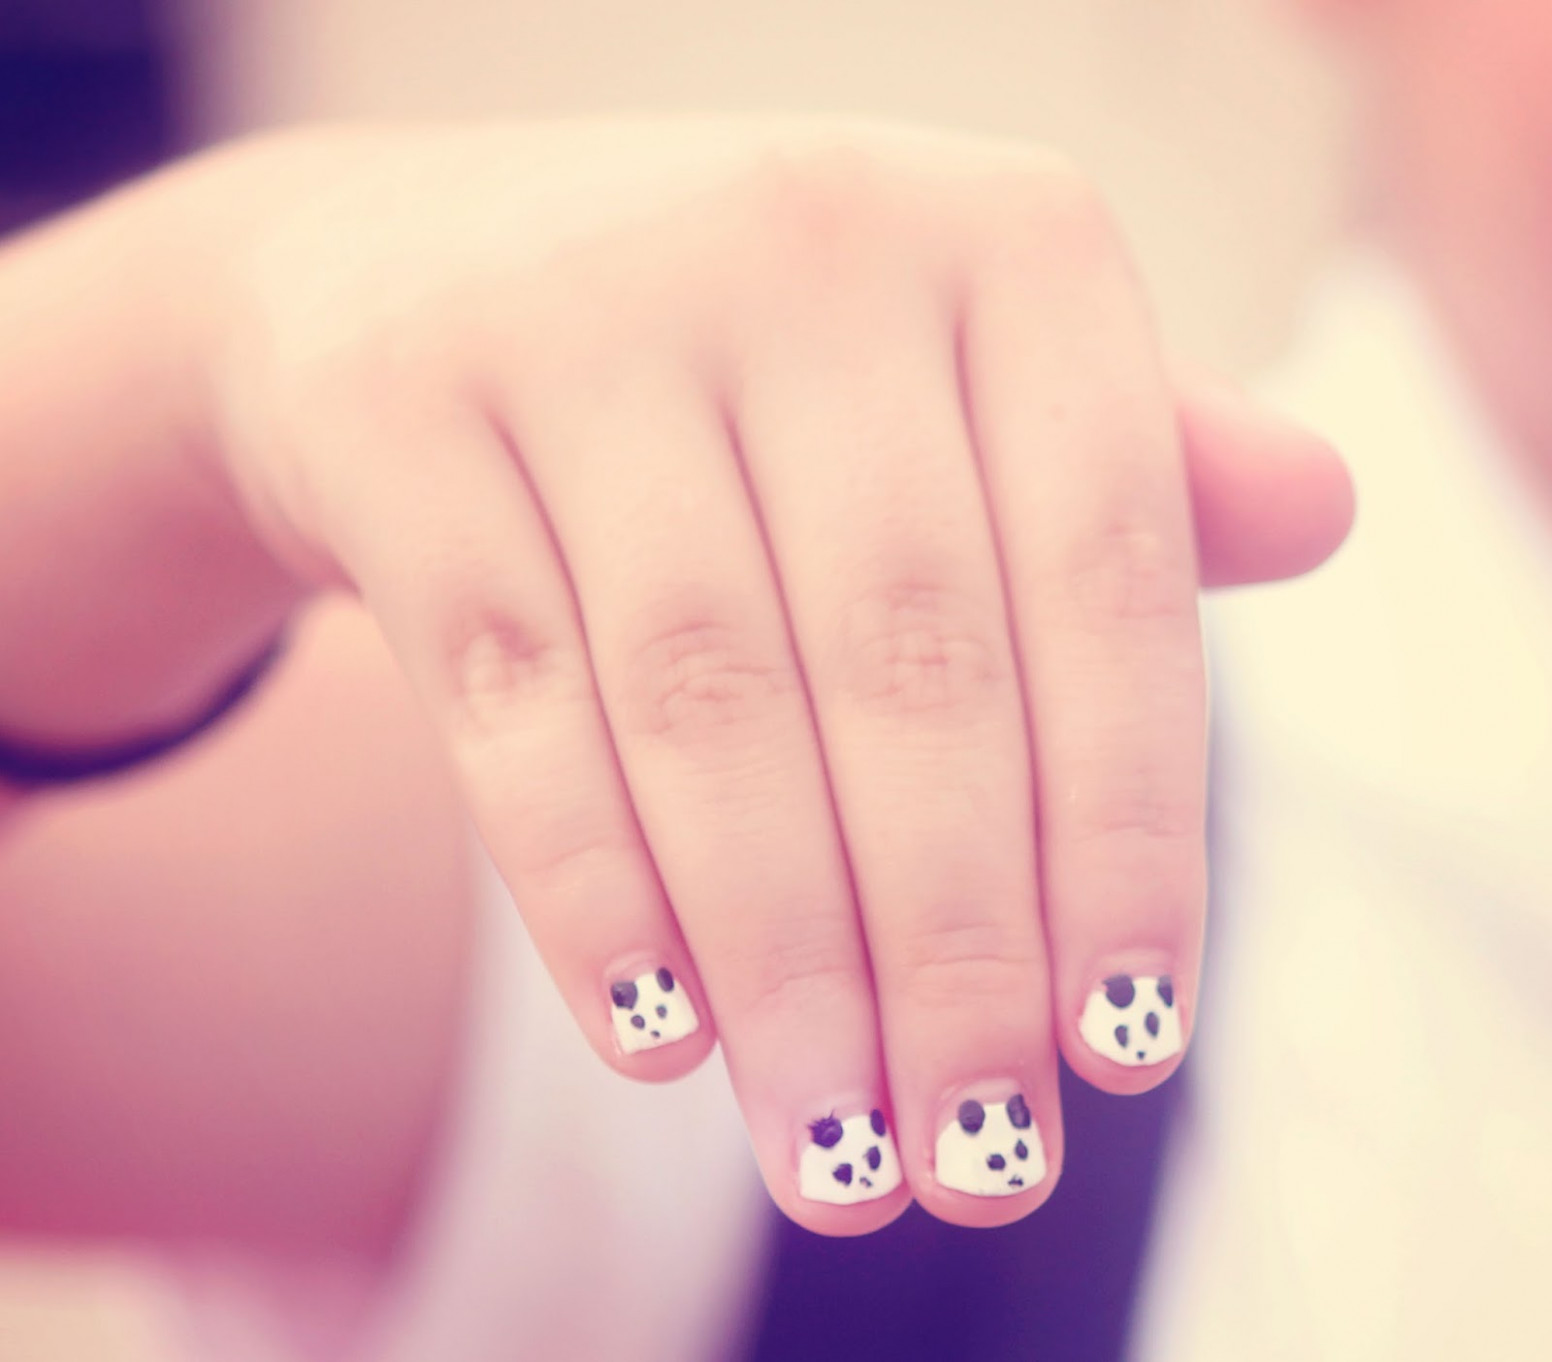 12 Nail Designs Do It Yourself At Home Images - To Do Cute Nail  - Cute Little Girl Nail Designs